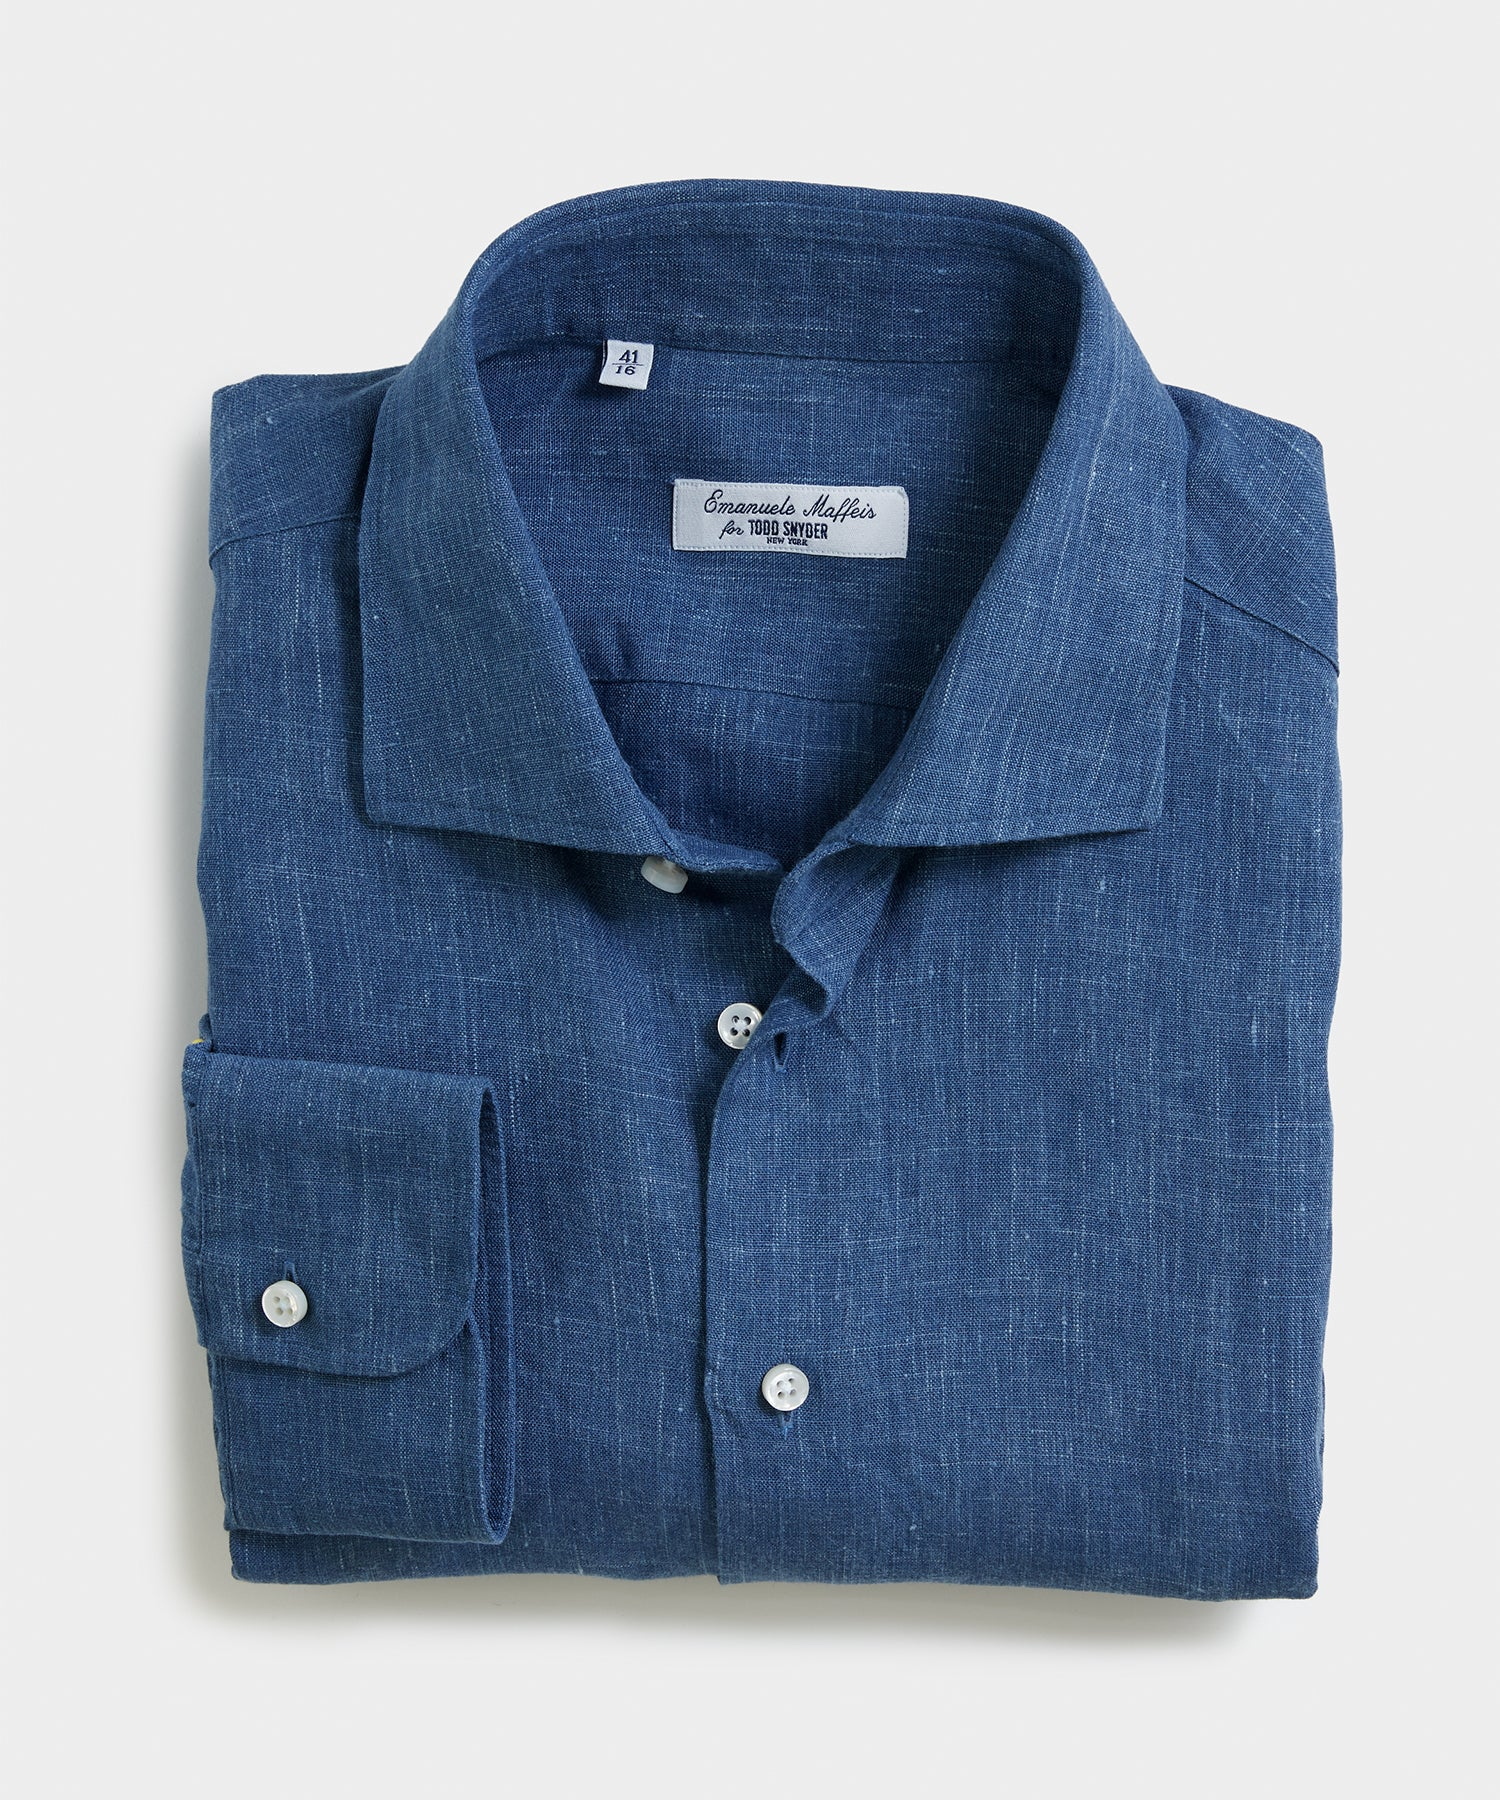 Camiceria E. Maffeis Organic Solid Cotton/Linen Dress Shirt in Navy